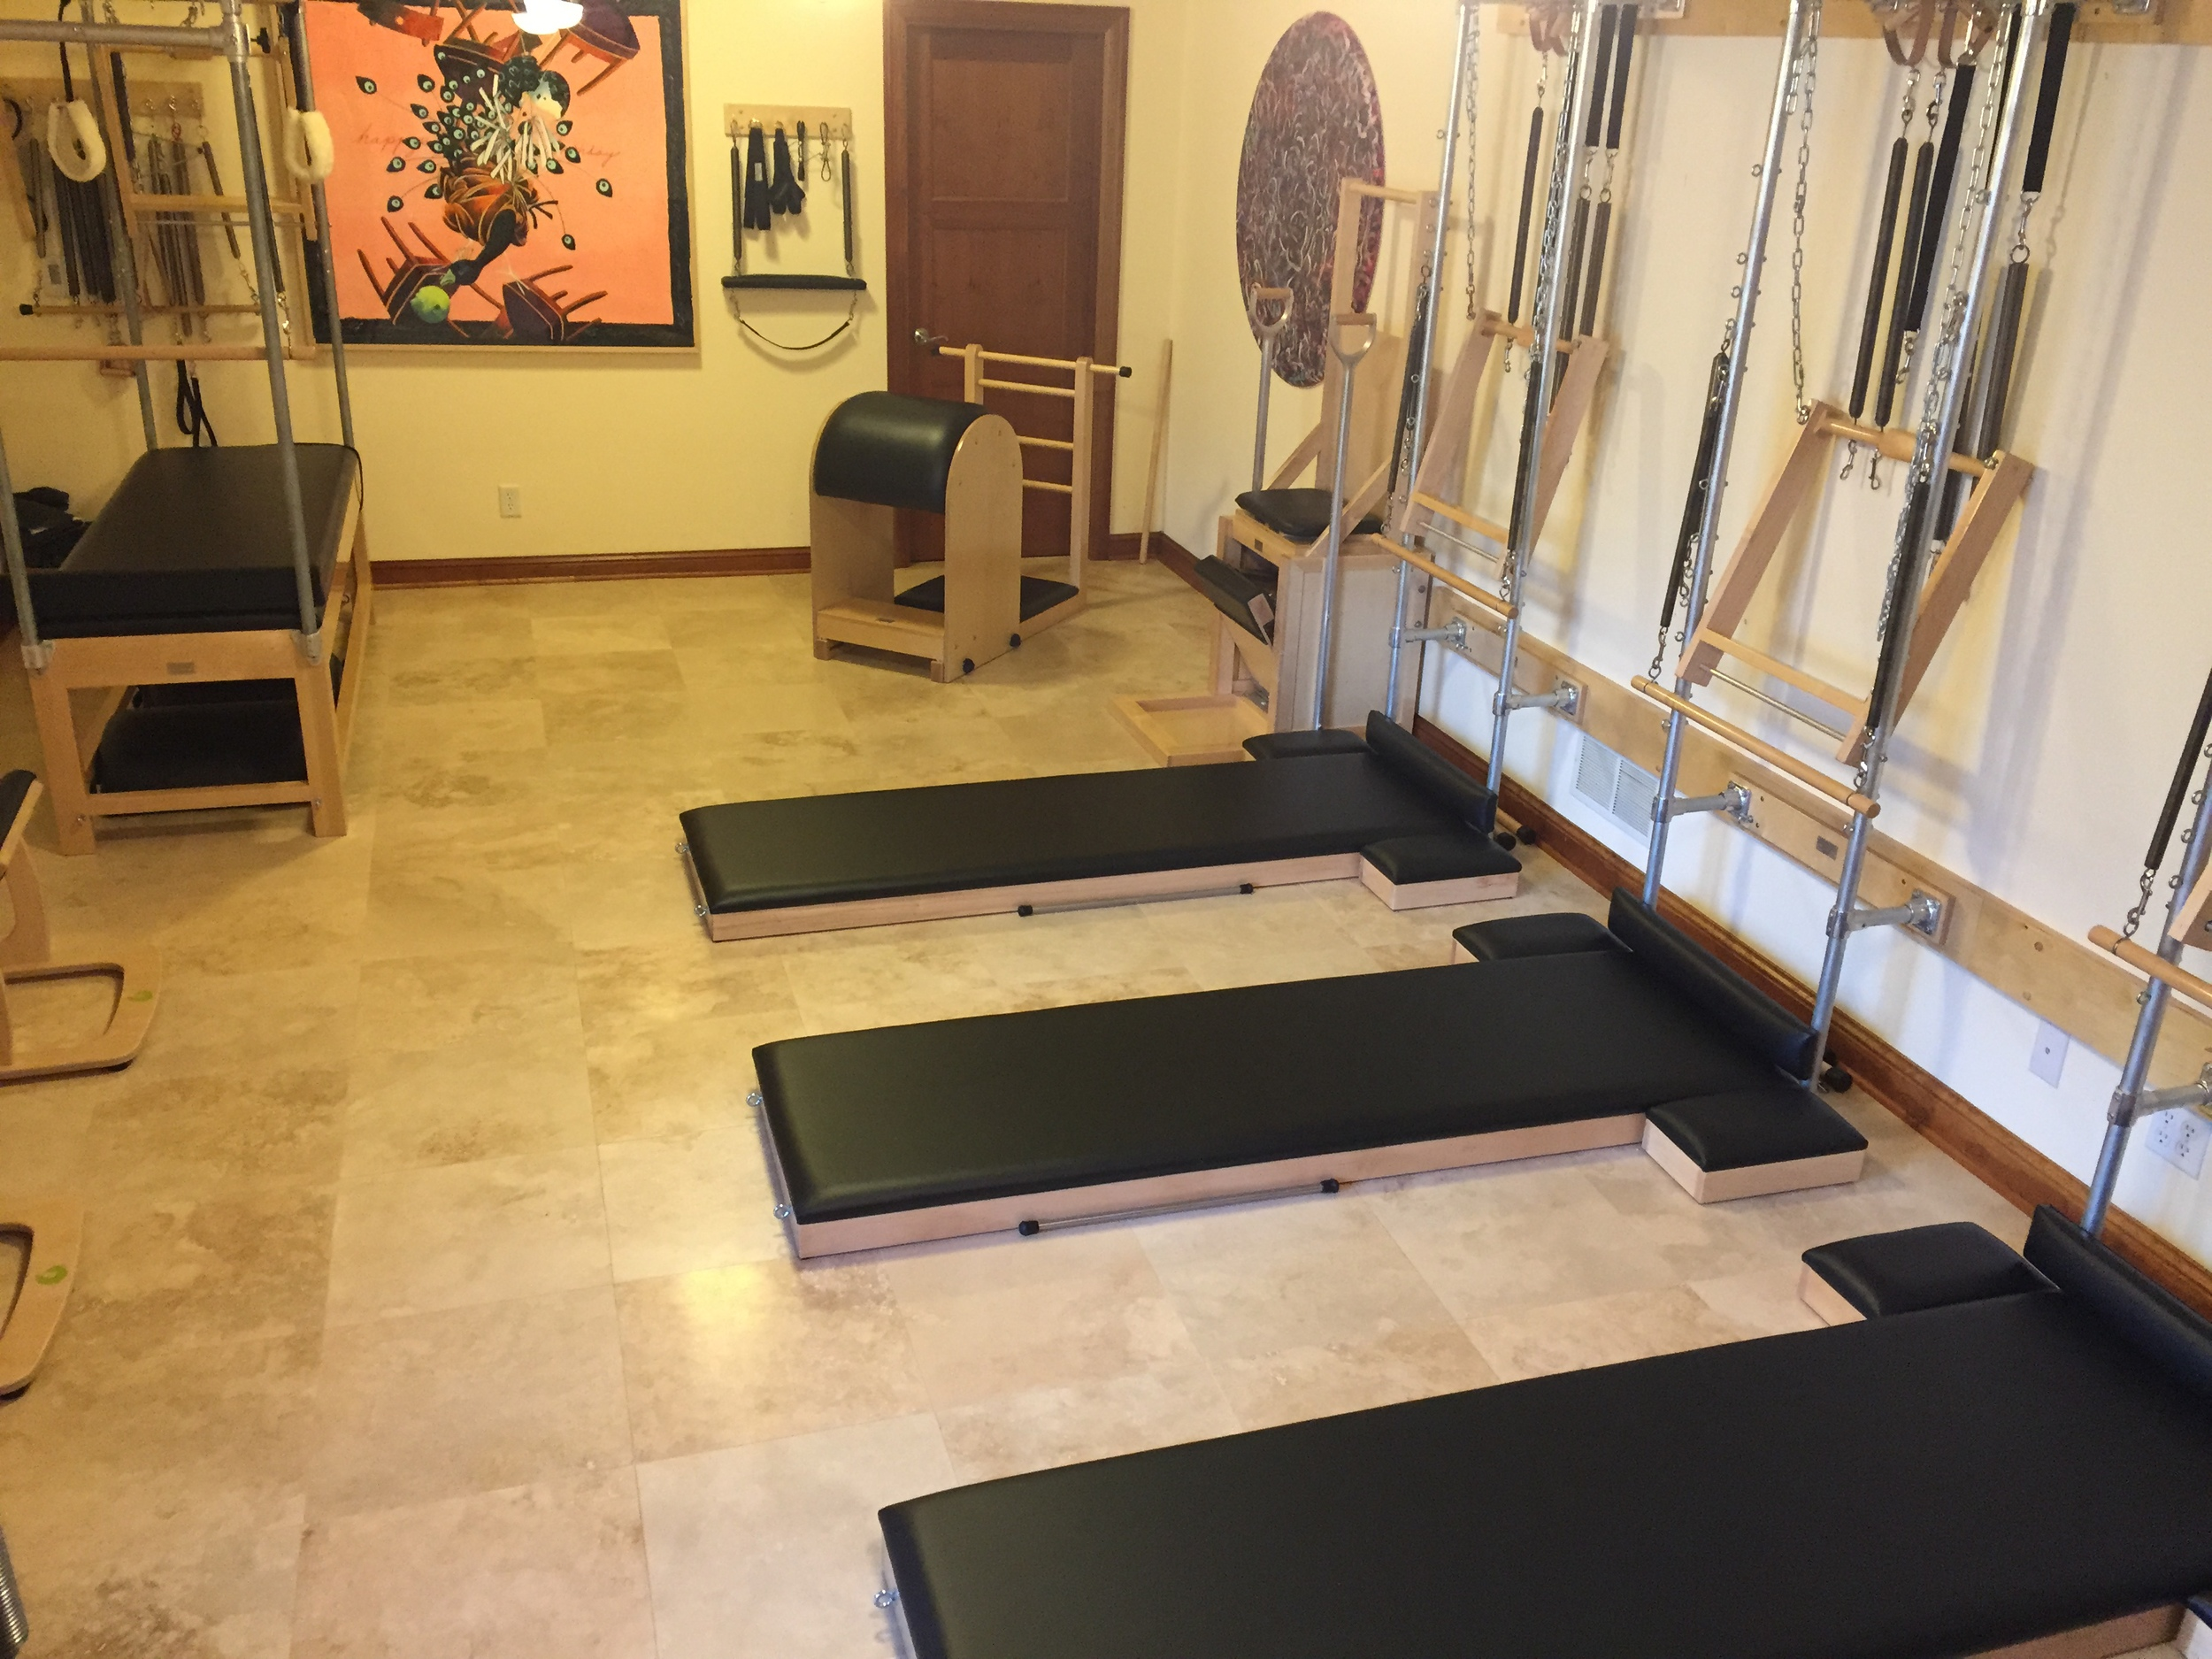 Towers, springs and mats in studio